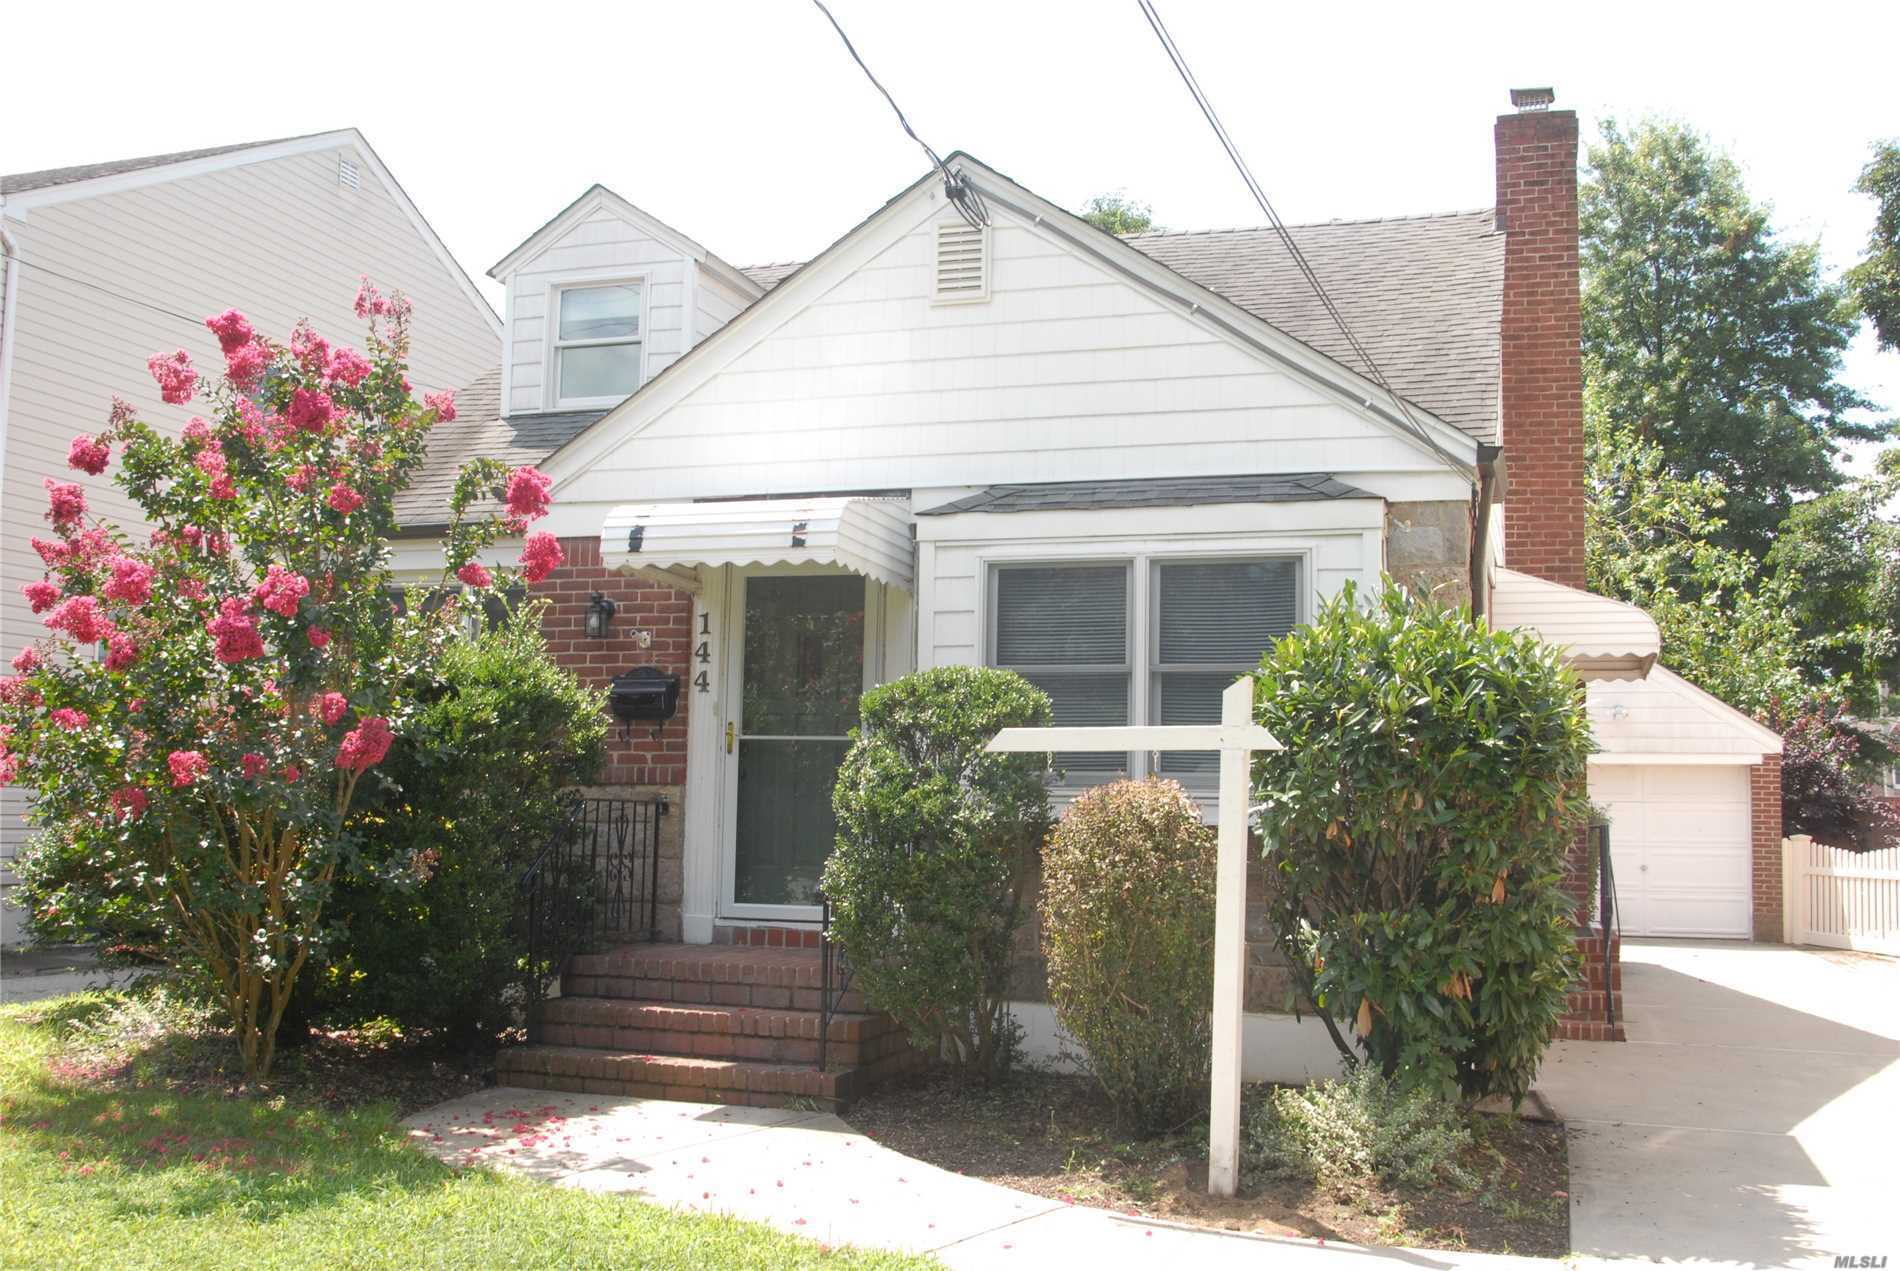 Spacious Cape In Floral Park Village-Move Right In. Beautiful Hardwood Floors Throughout, Lots Of Windows Which Makes Home Very Bright. Close To L.I.R.R. And Floral Park Bird Sanctuary. Kitchen And First Floor Bathroom Has Been Renovated A Few Years Back. Huge Basement With O.S.E.